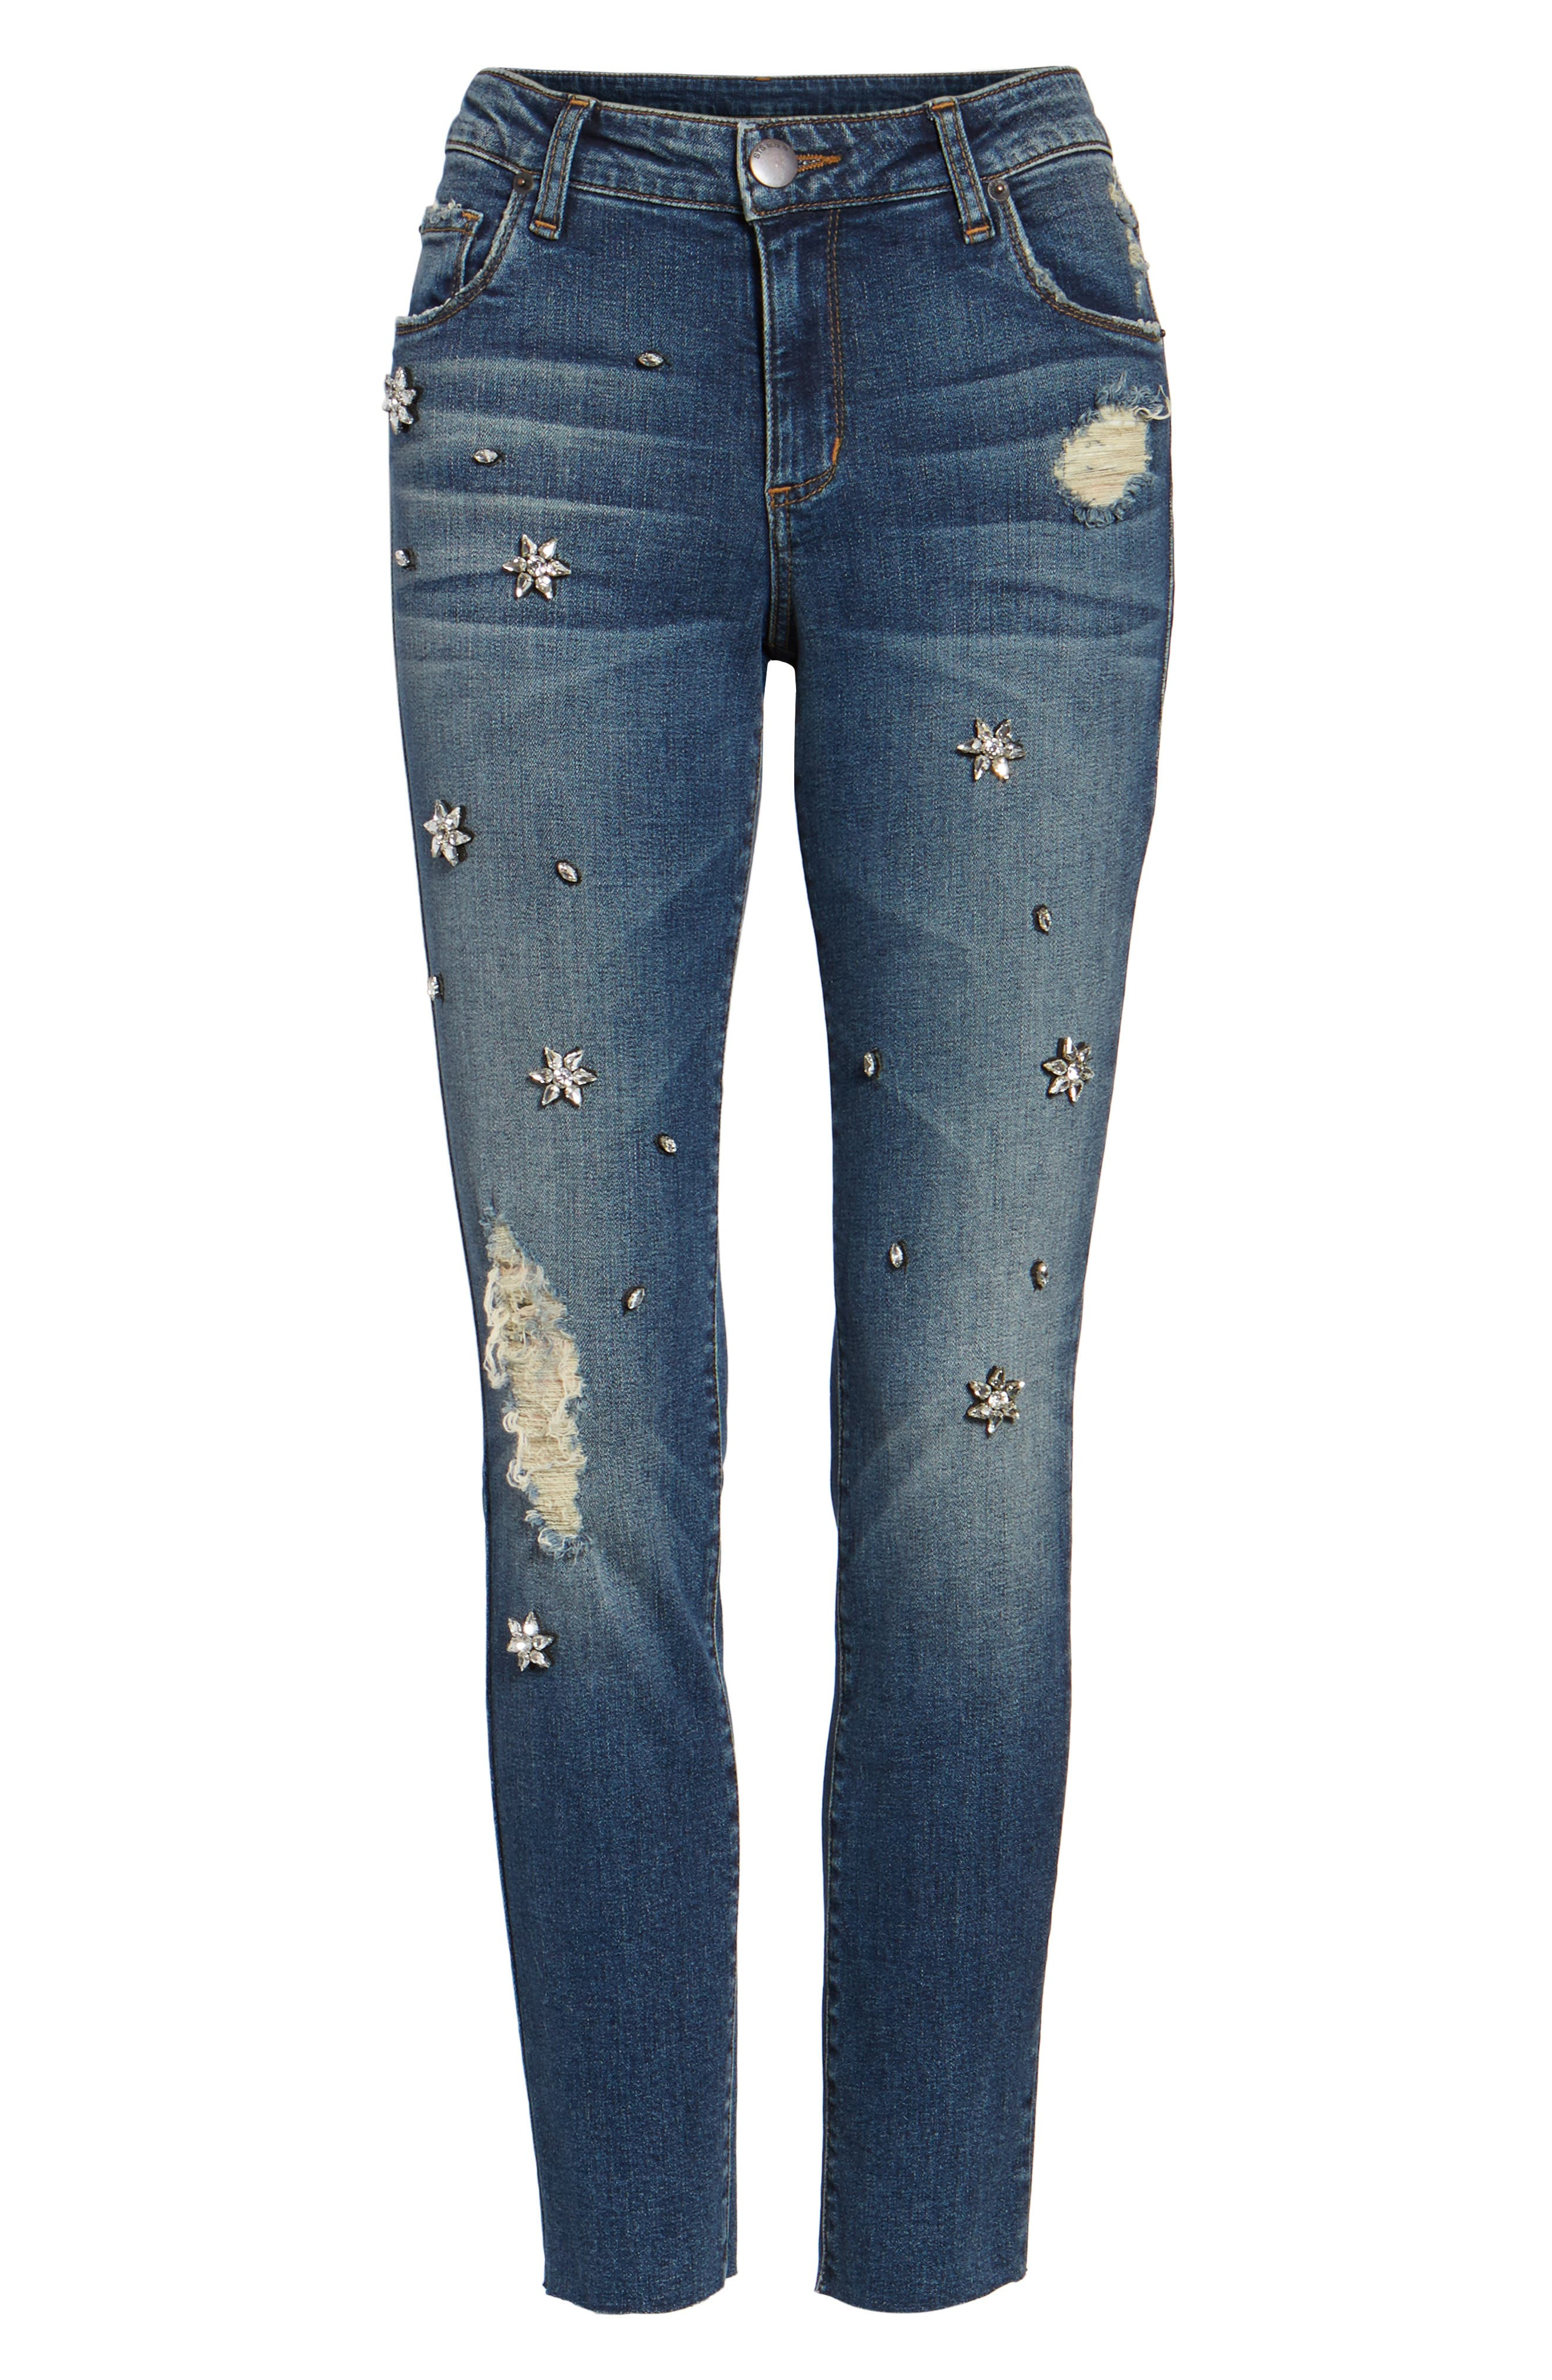 Taylor Jeweled Crop Straight Leg Jeans,                             Alternate thumbnail 6, color,                             East River View